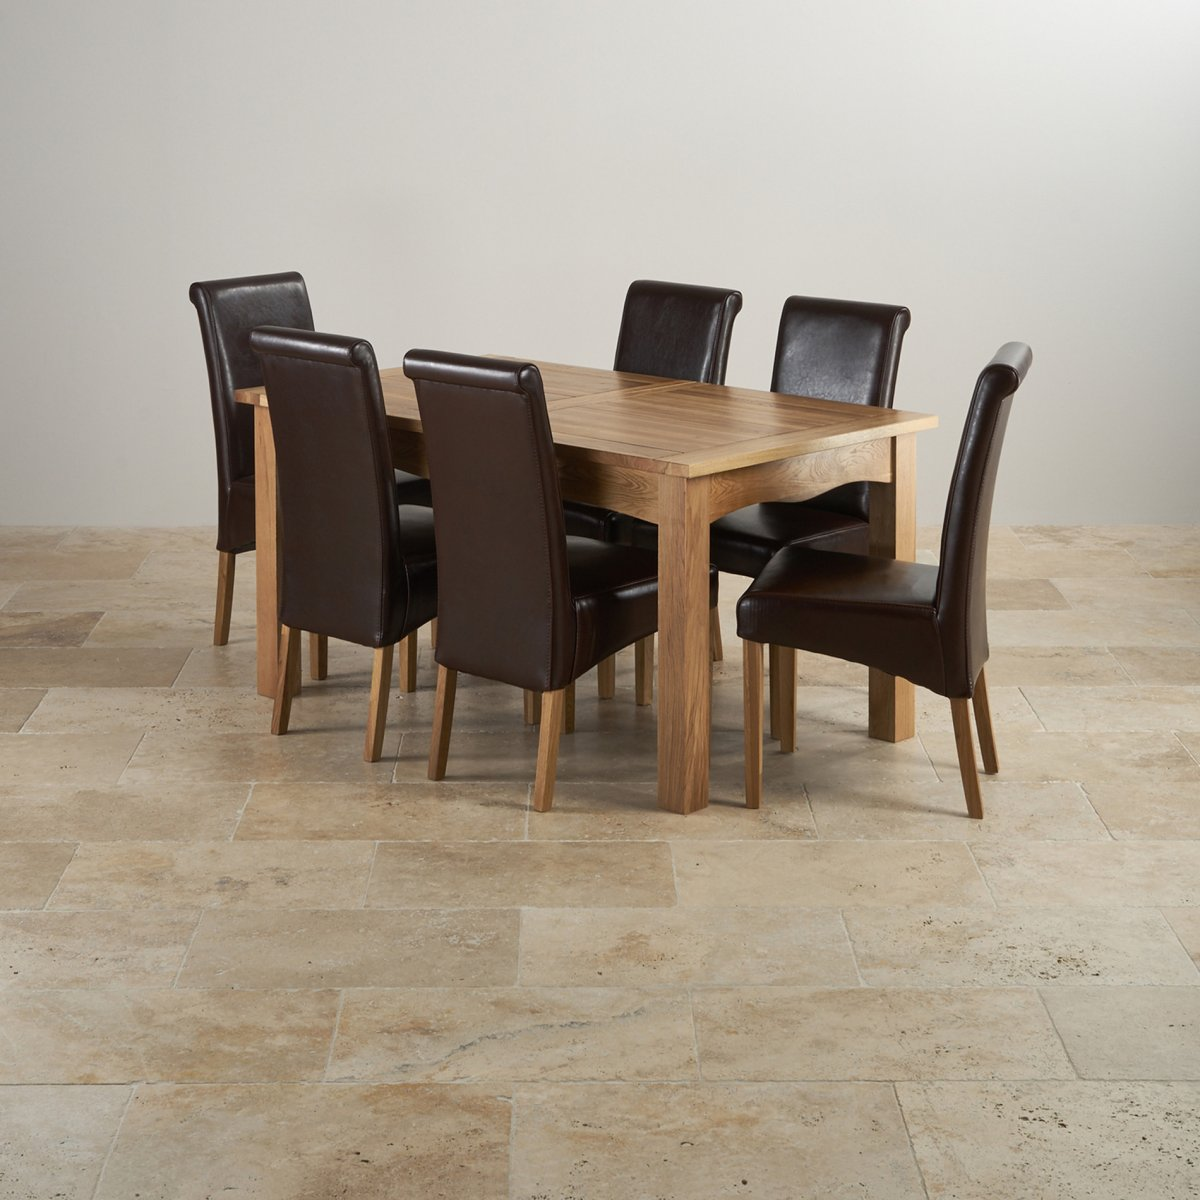 Cairo Extending Dining Set In Oak: Table + 6 Leather Chairs